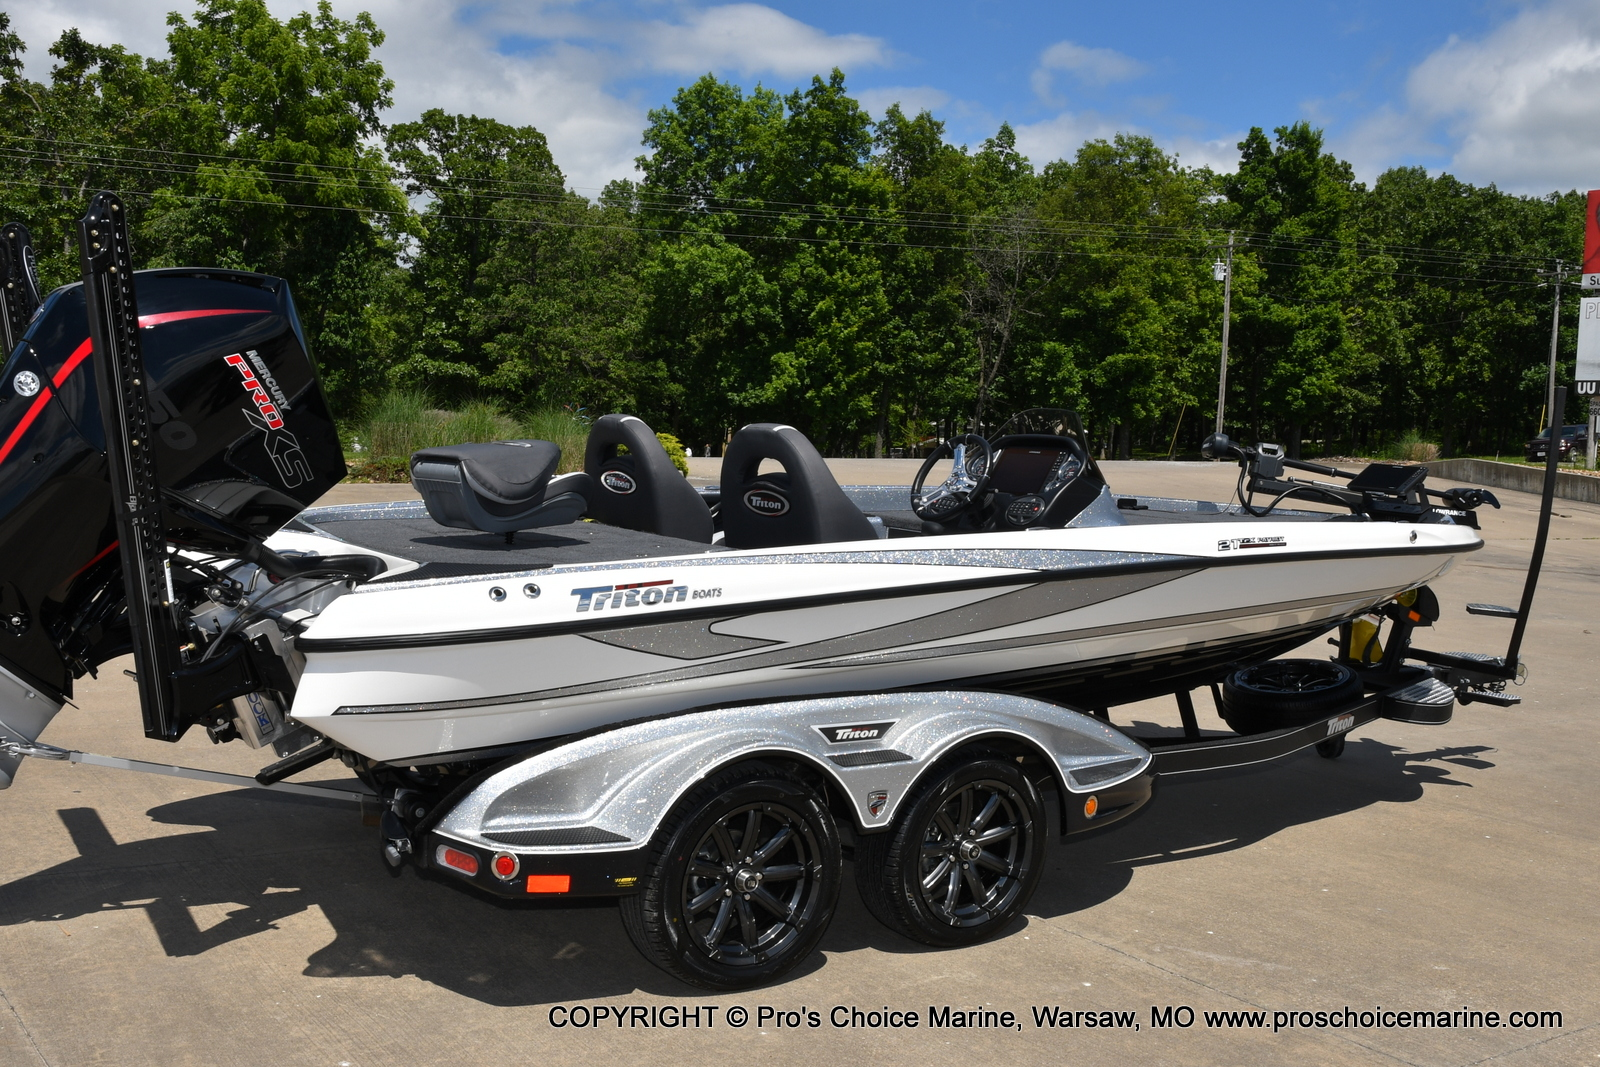 2021 Triton boat for sale, model of the boat is 21 TRX Patriot & Image # 14 of 50